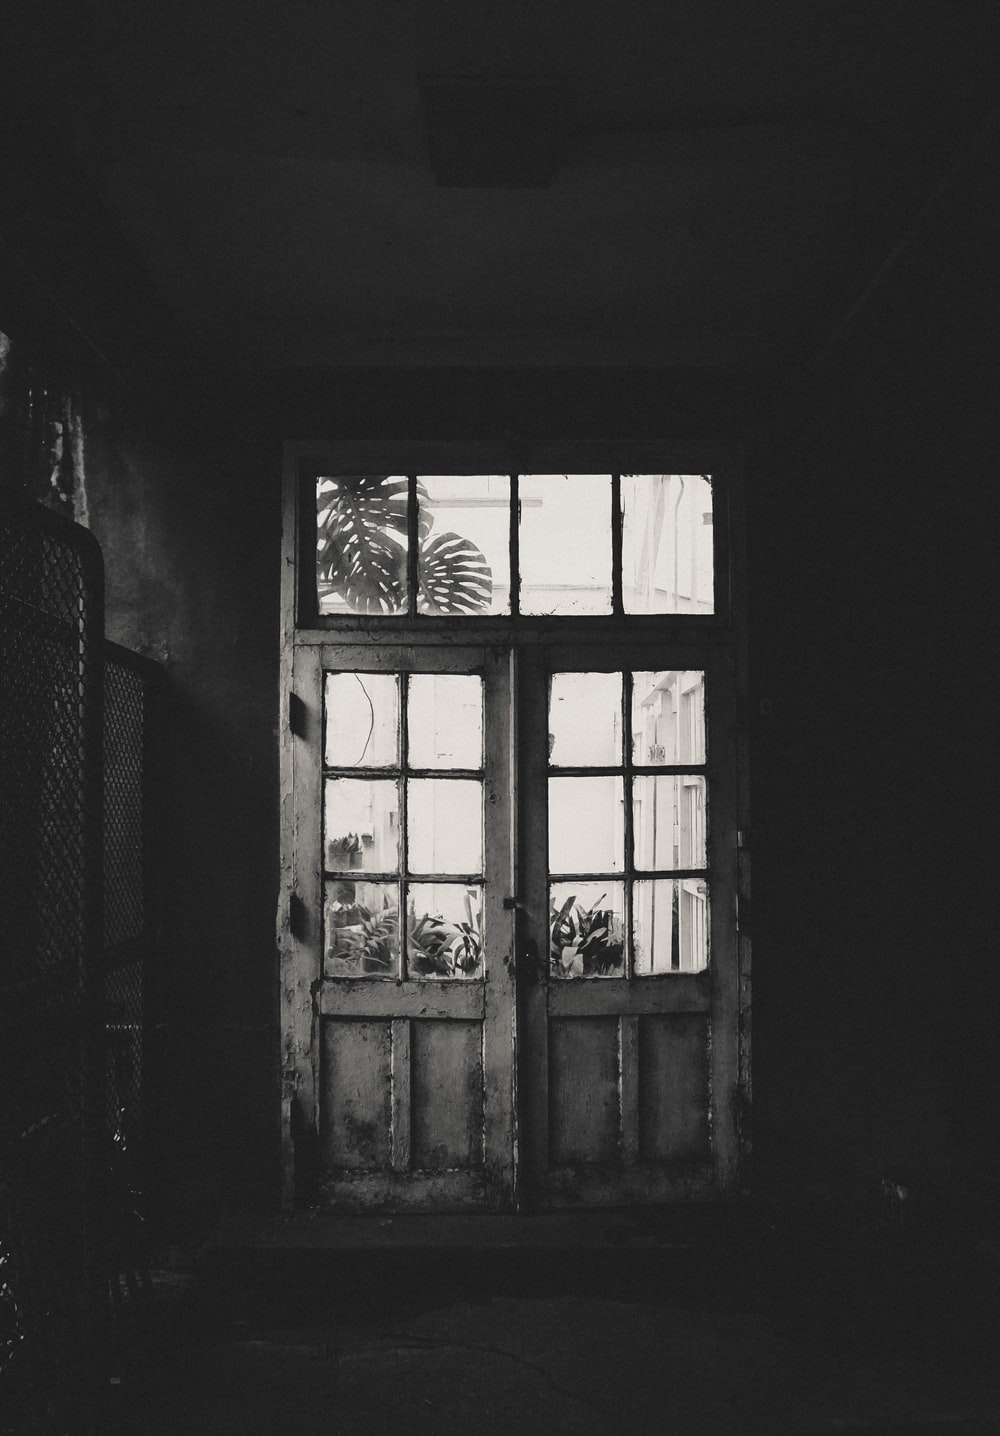 grayscale photo of wooden framed clear glass door